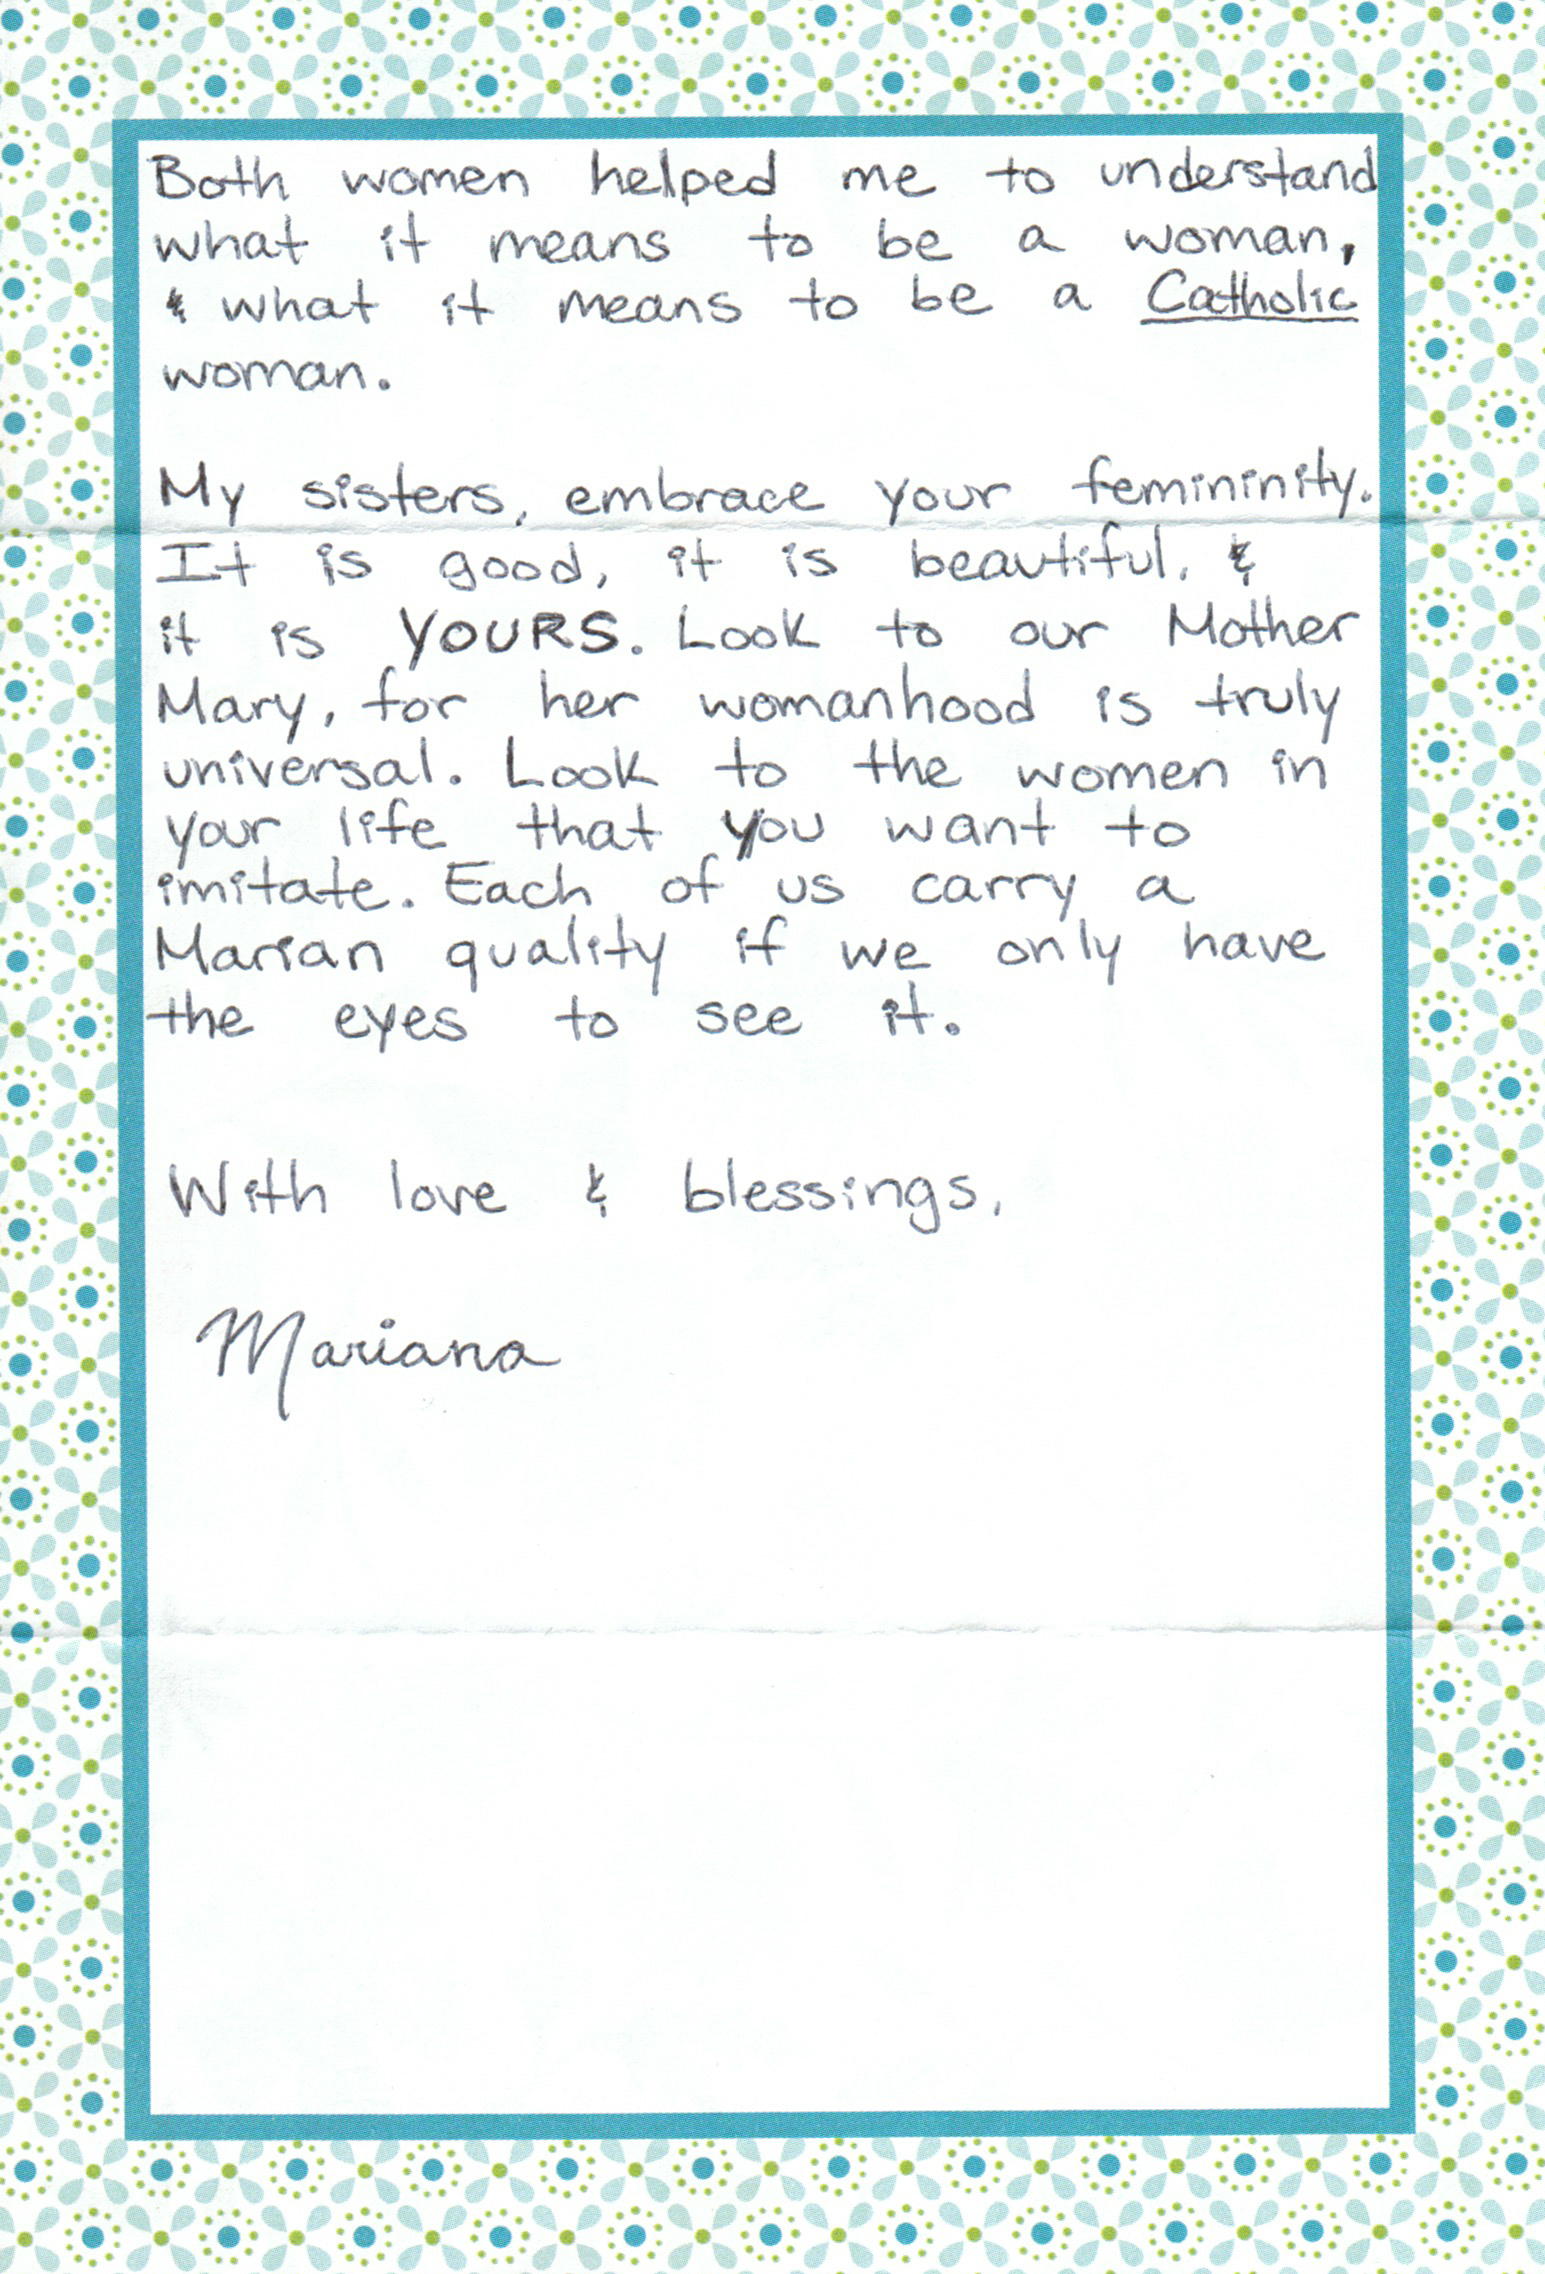 Mariana Flores Letter to Women The Catholic Woman 3